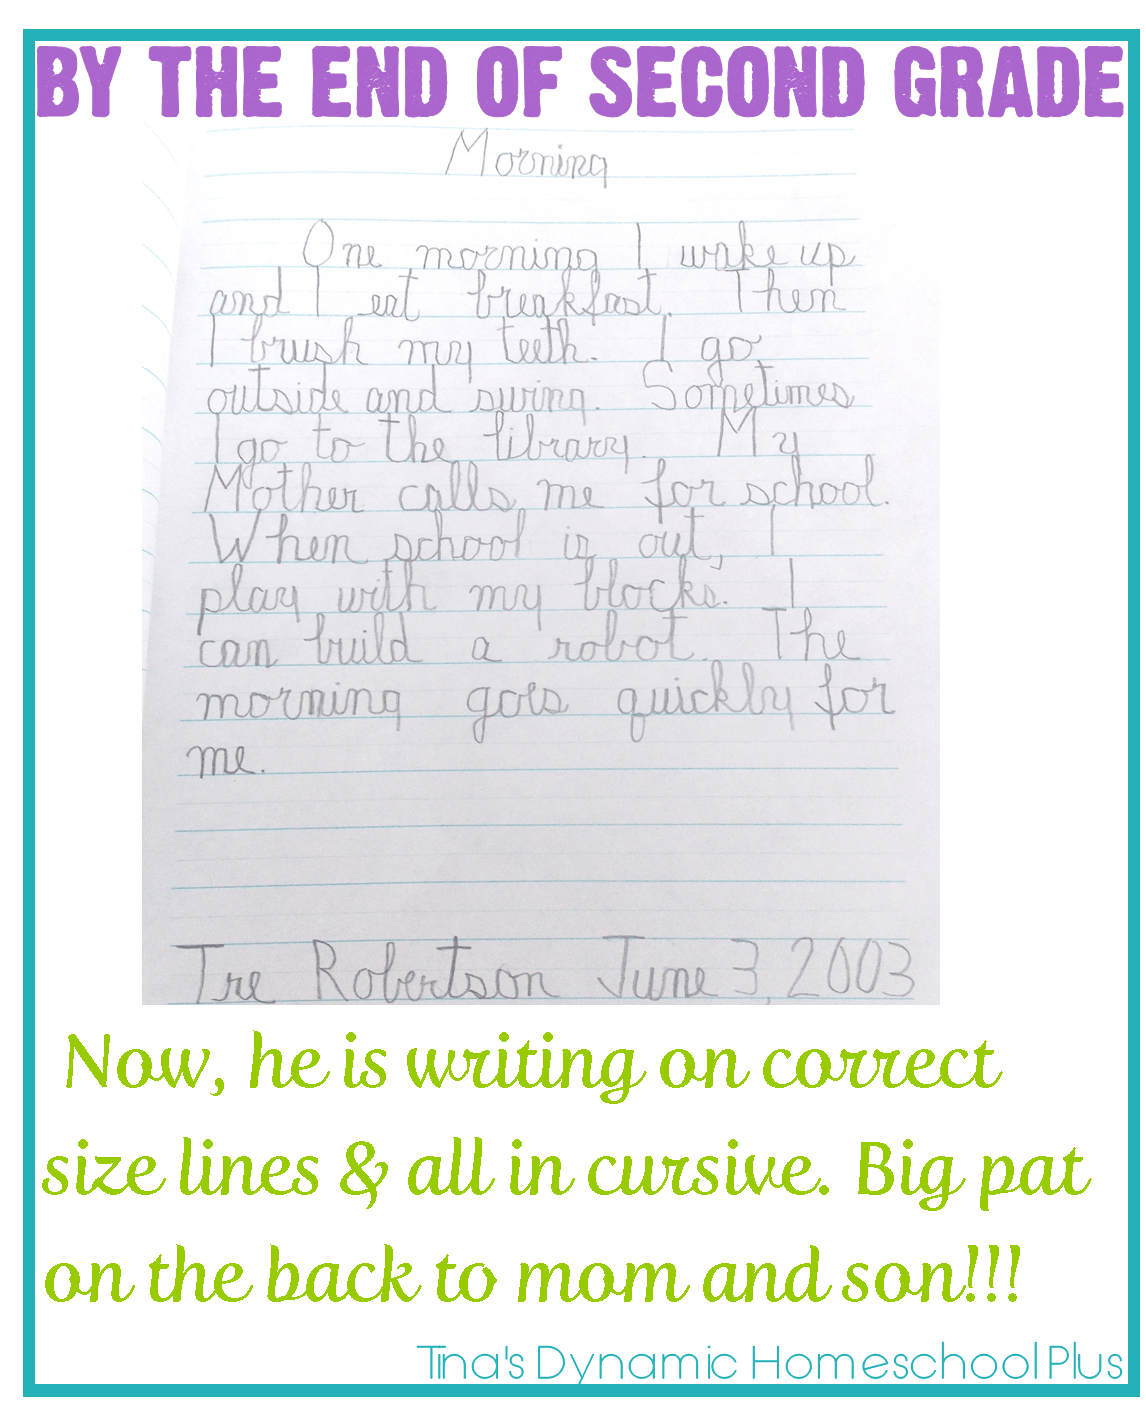 Teaching Handwriting When Homeschooling the Early Years Part 3 By the End of Second Grade 1 Teaching Handwriting When Homeschooling the Early Years Part 3